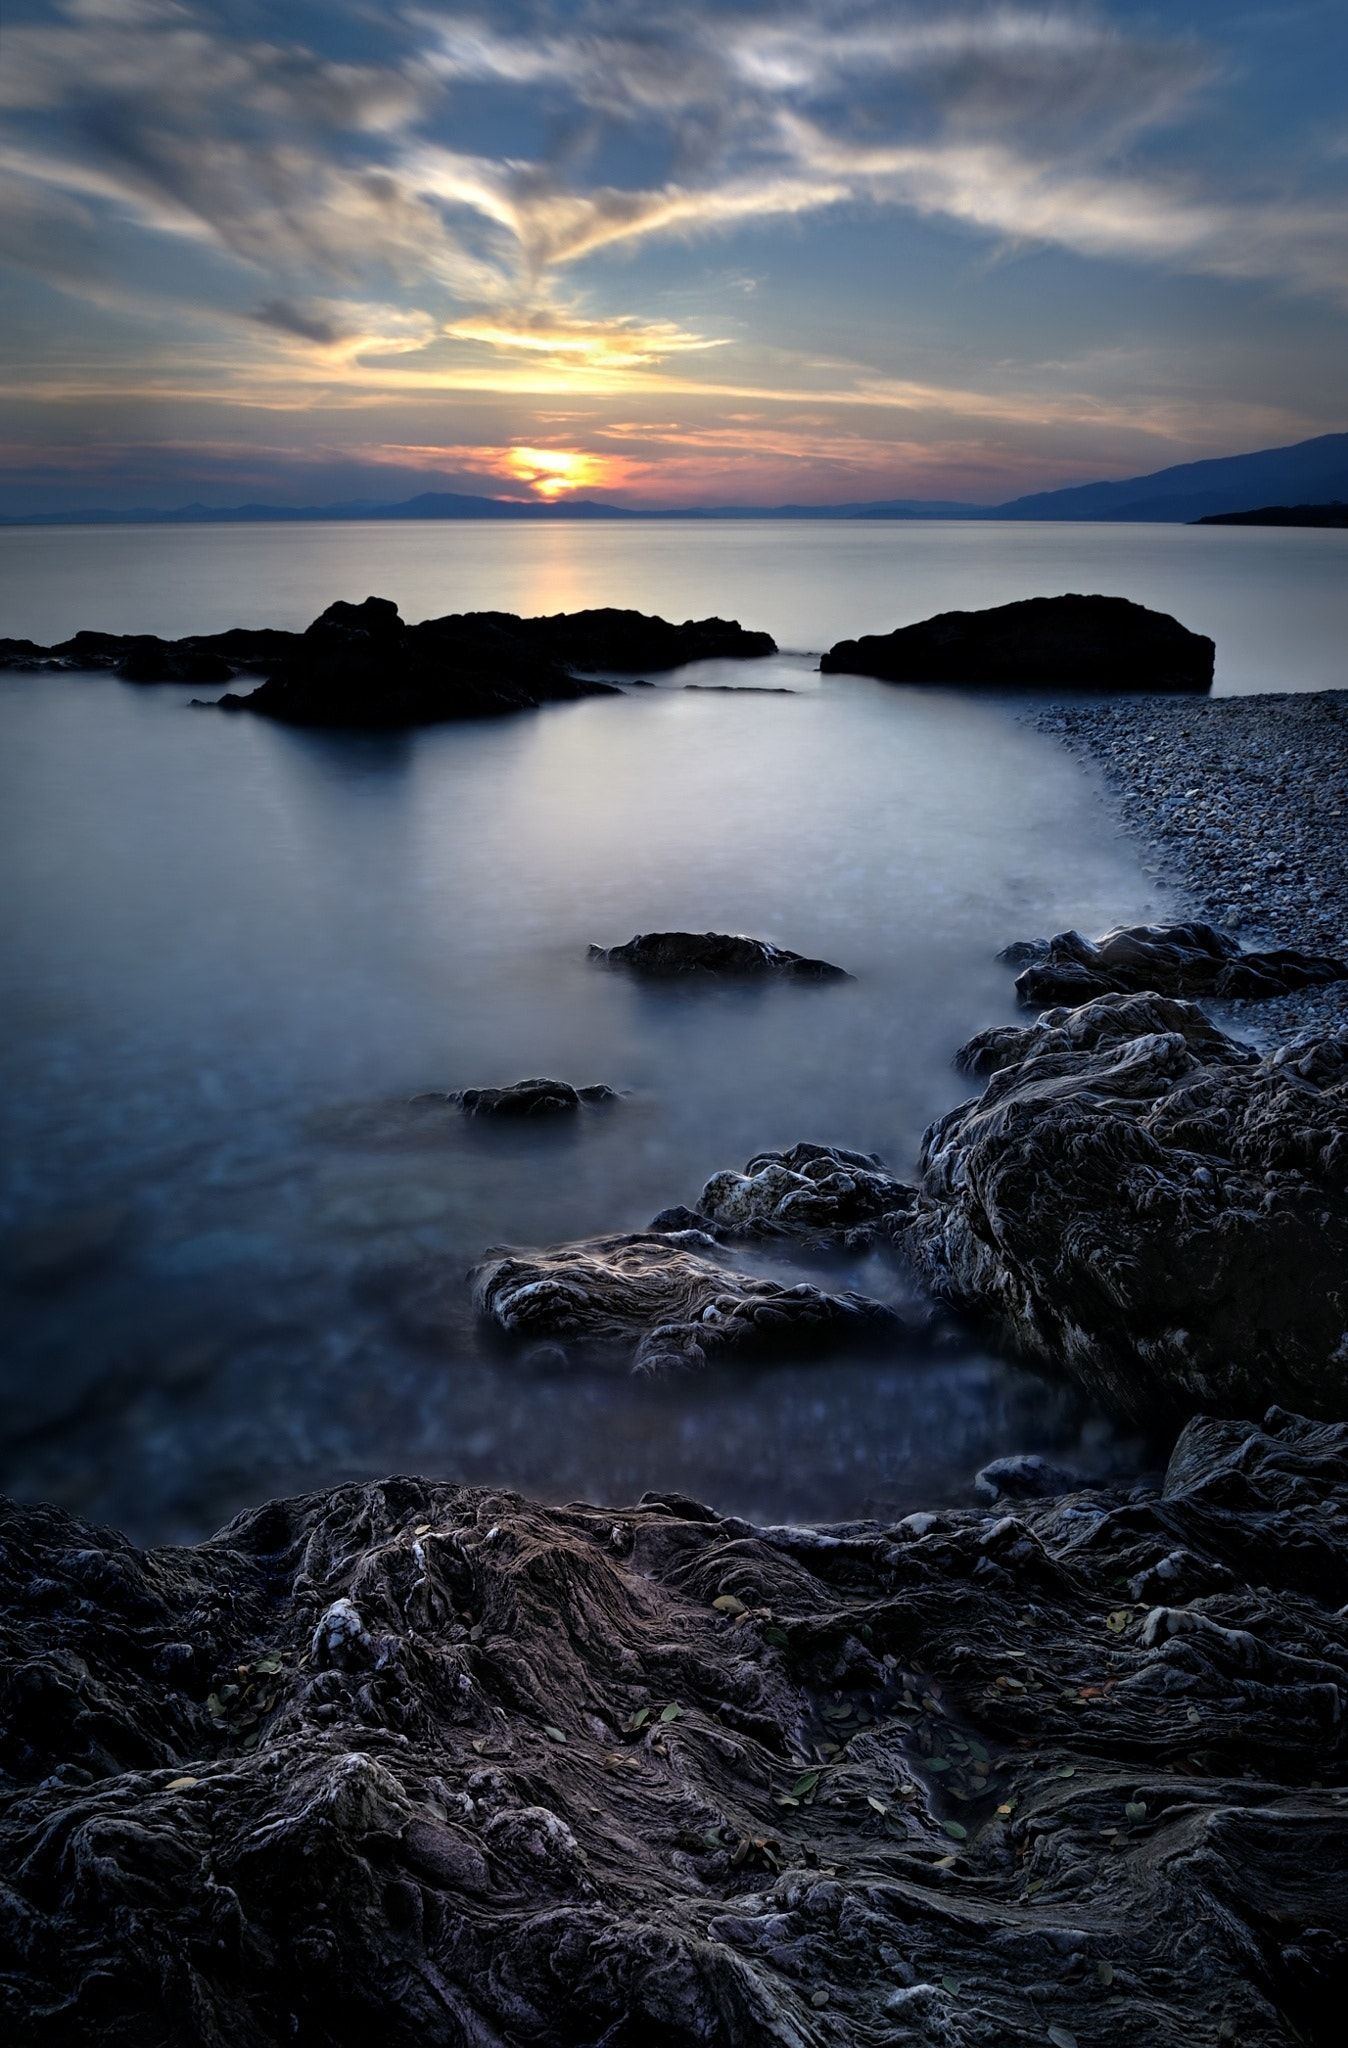 sunset at the rocks - )